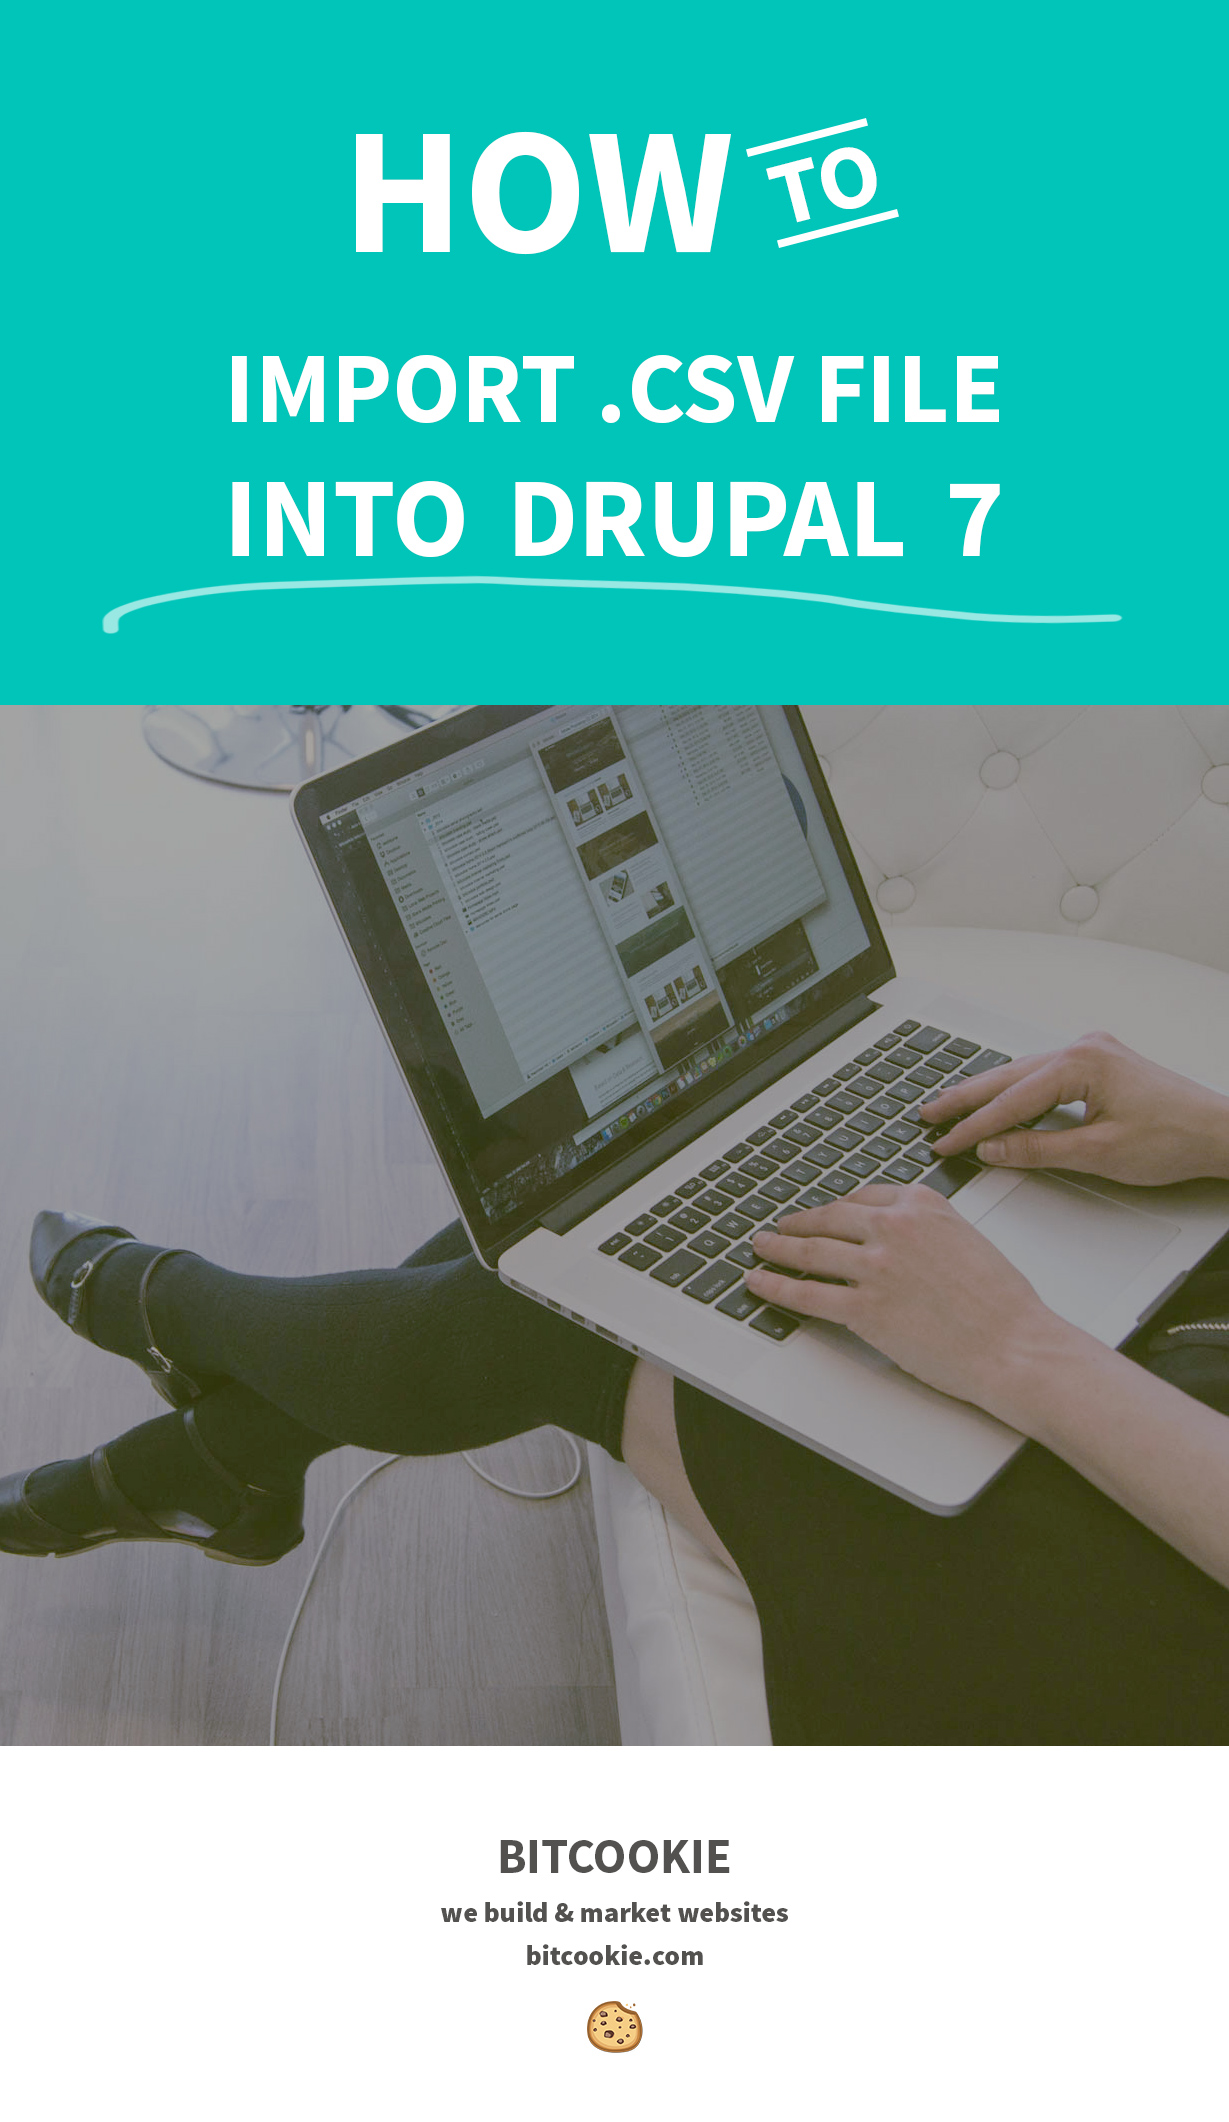 Importing a CSV file into Drupal 7 programmatically using